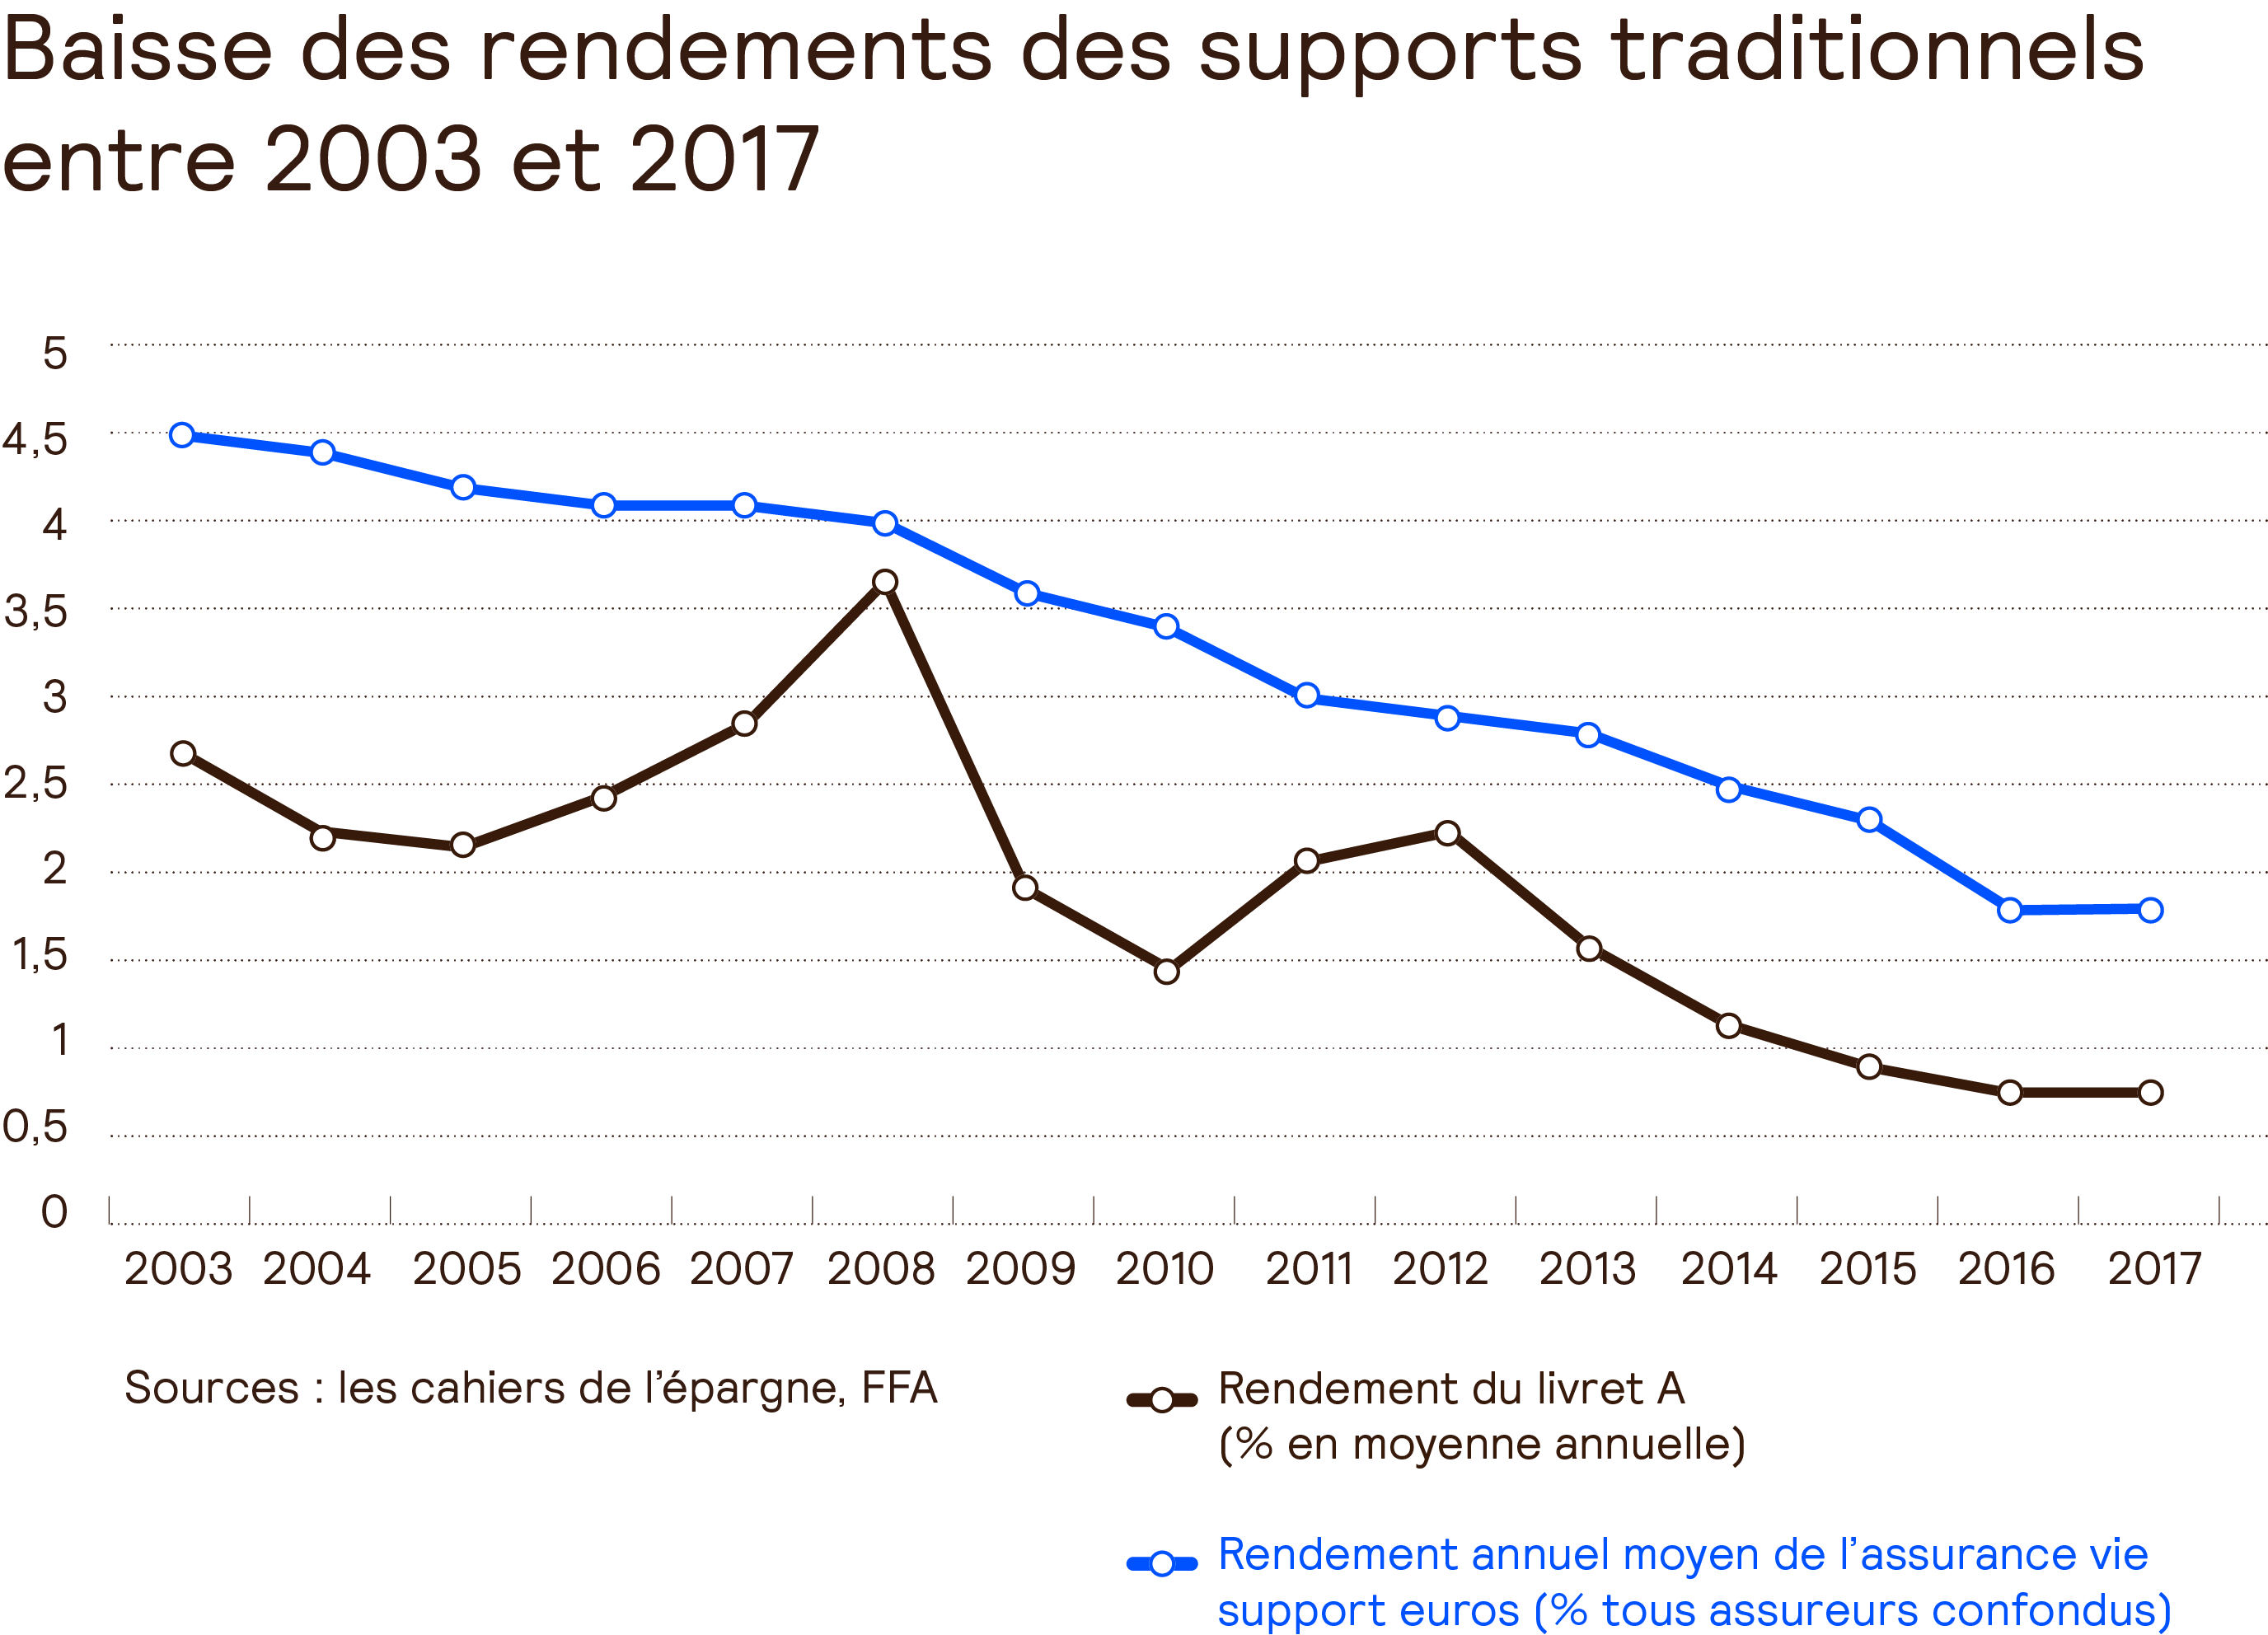 AG2R-LA-MONDIALE-rendement-supports-traditionnels-2752par1984.png